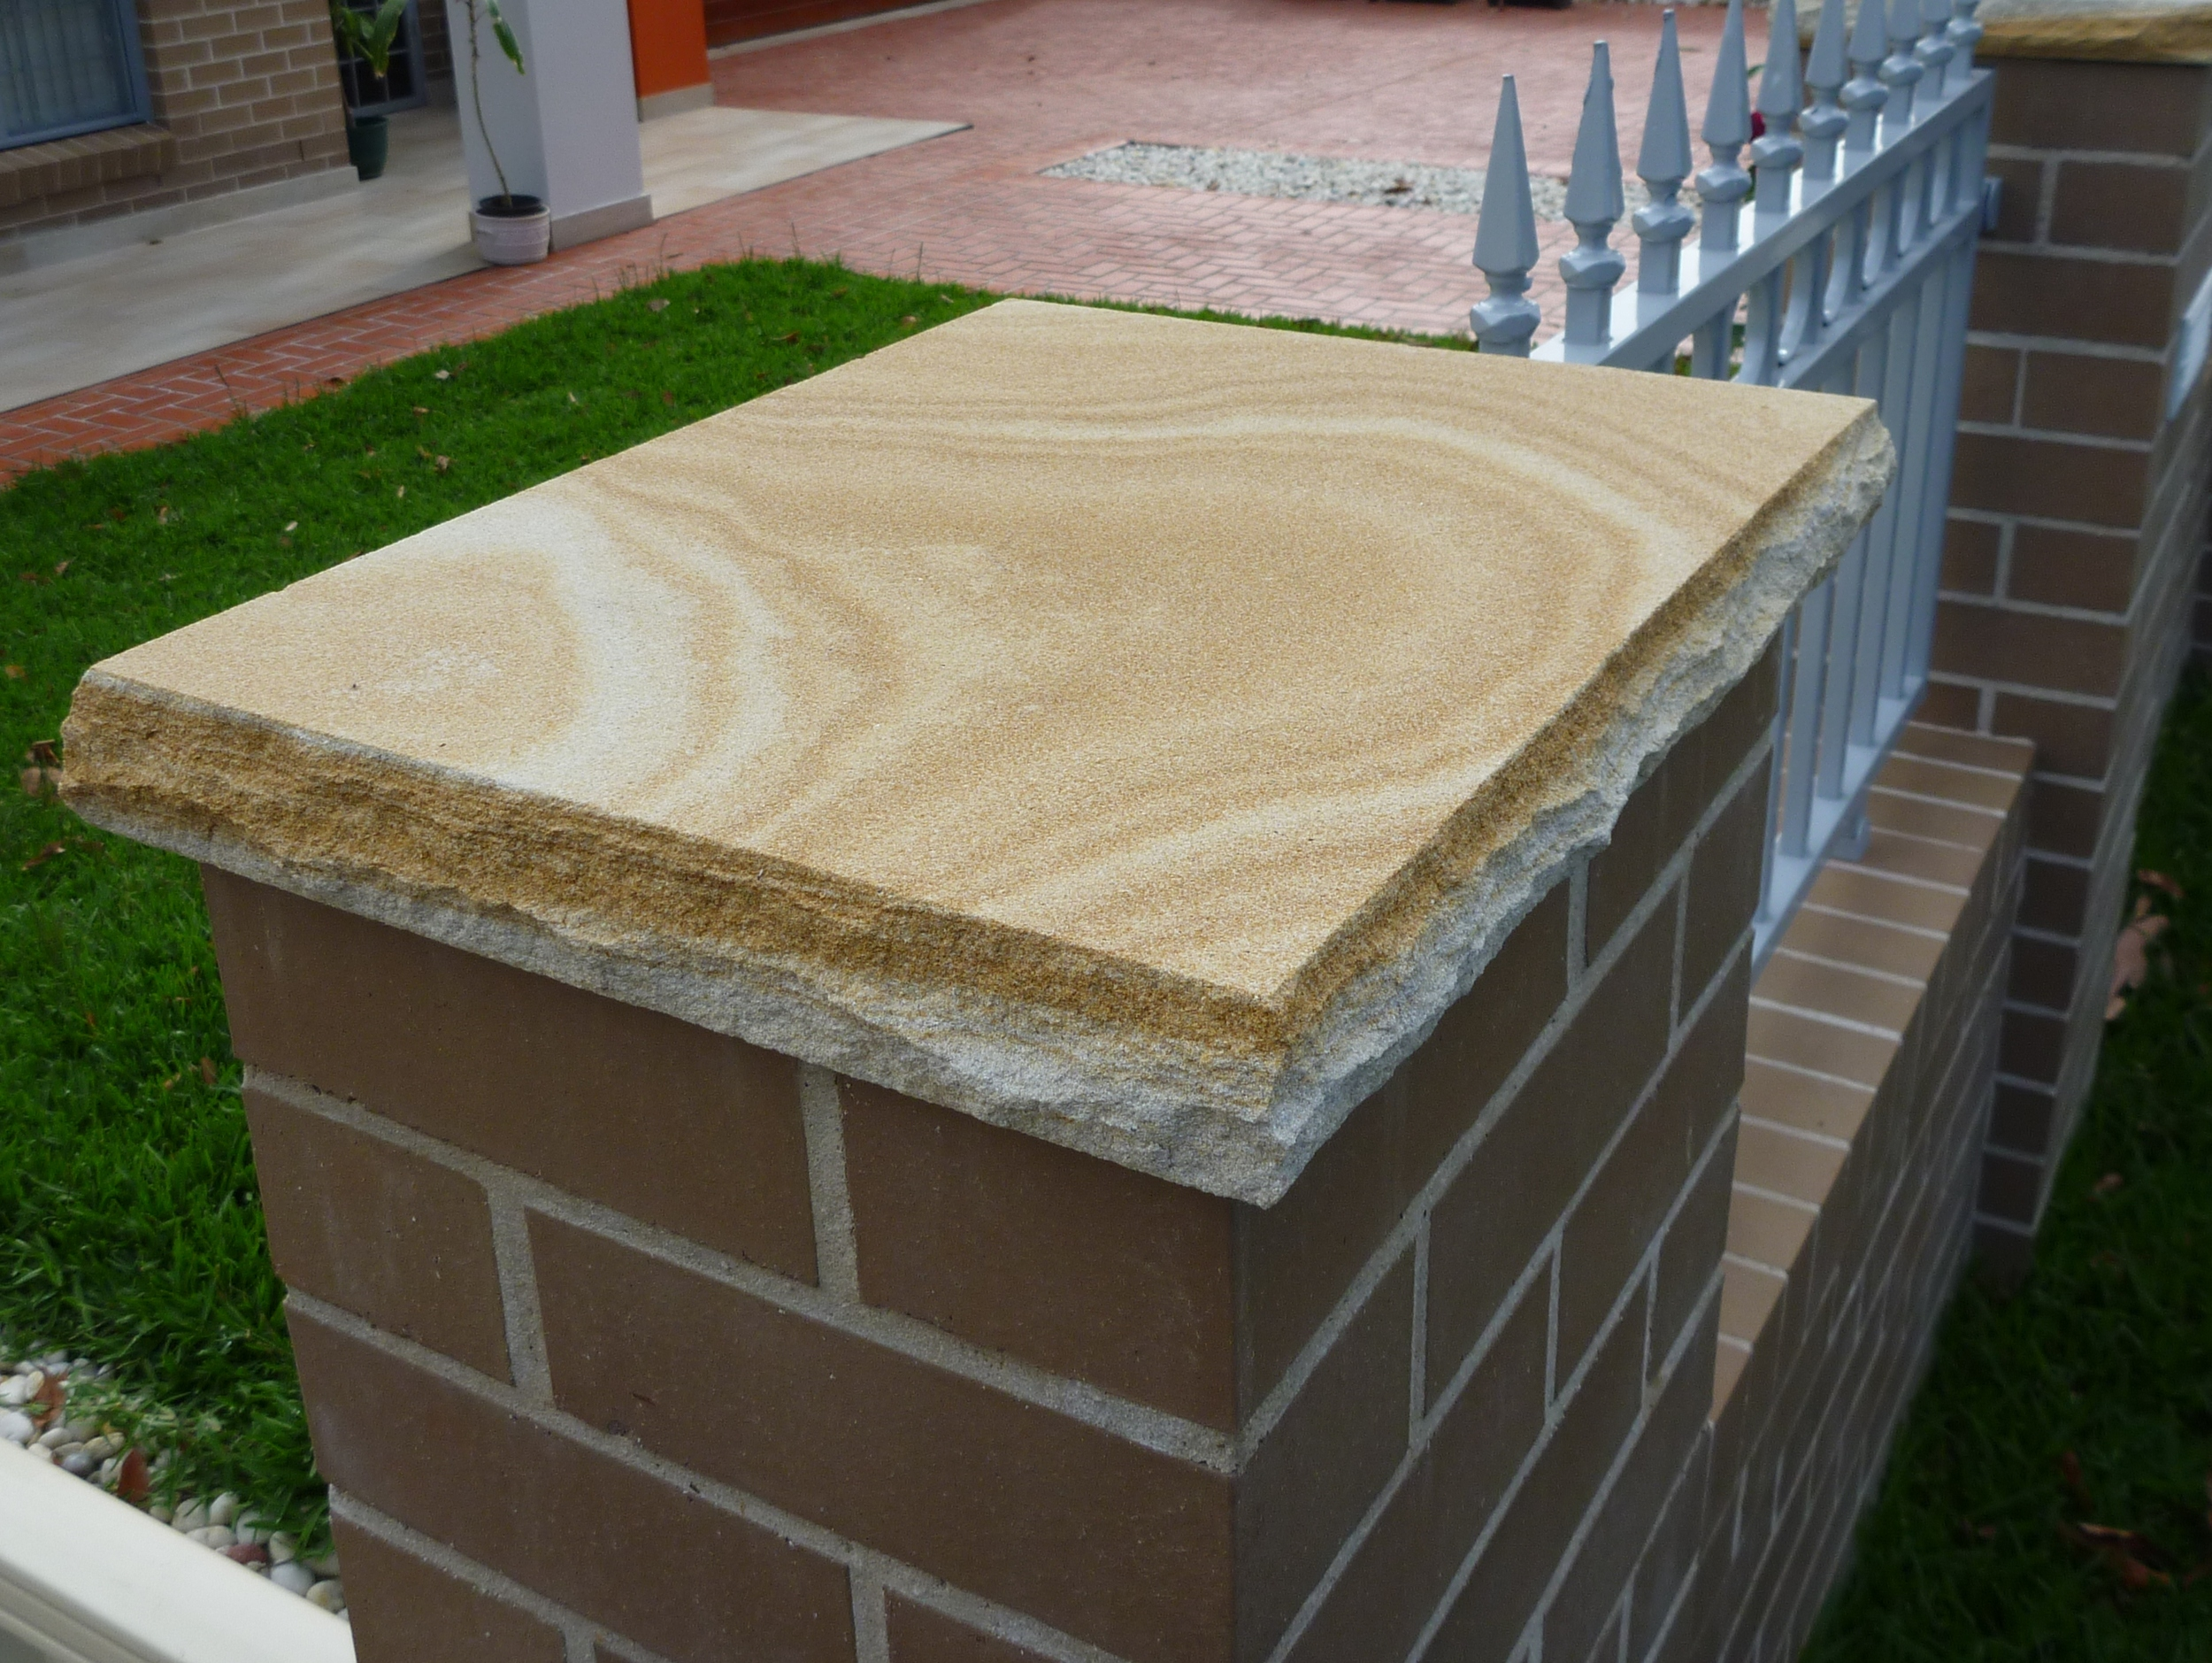 4. Australian Sandstone pier cupping 50mm thick (1)